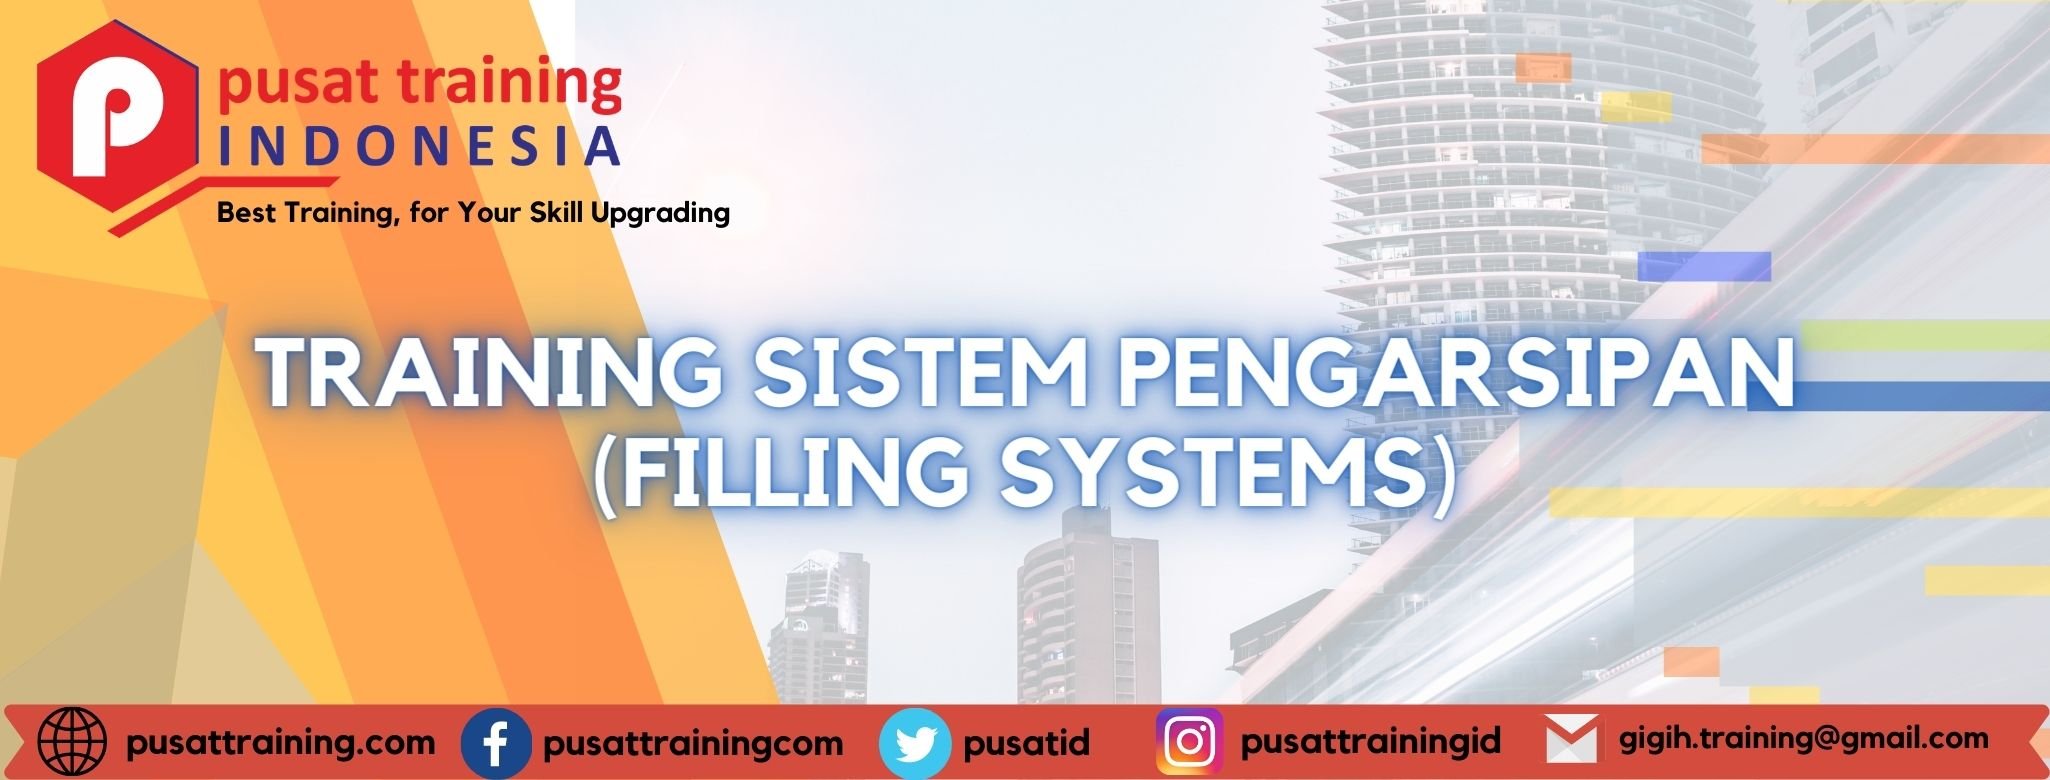 TRAINING SISTEM PENGARSIPAN (FILLING SYSTEMS)